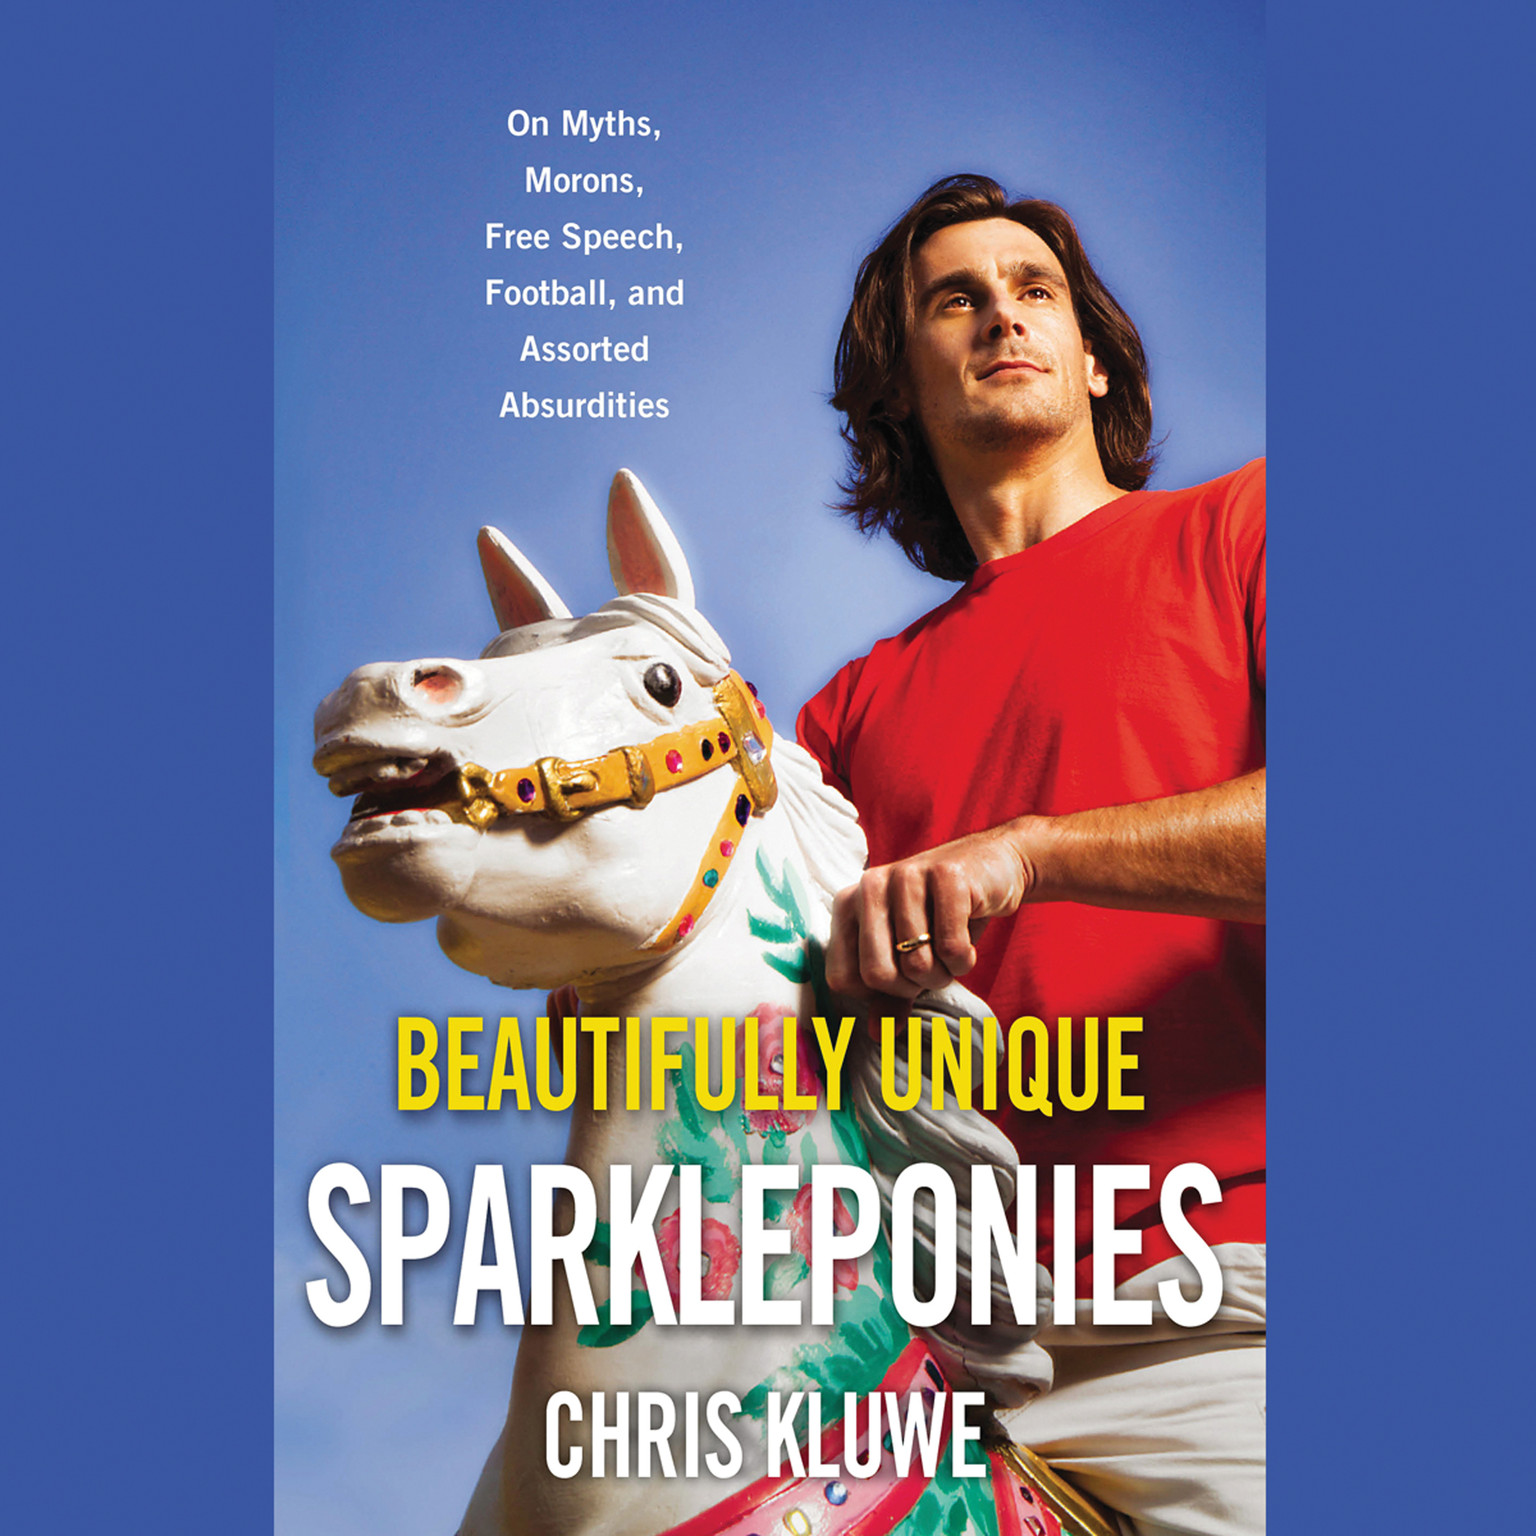 Printable Beautifully Unique Sparkleponies: On Myths, Morons, Free Speech, Football, and Assorted Absurdities Audiobook Cover Art